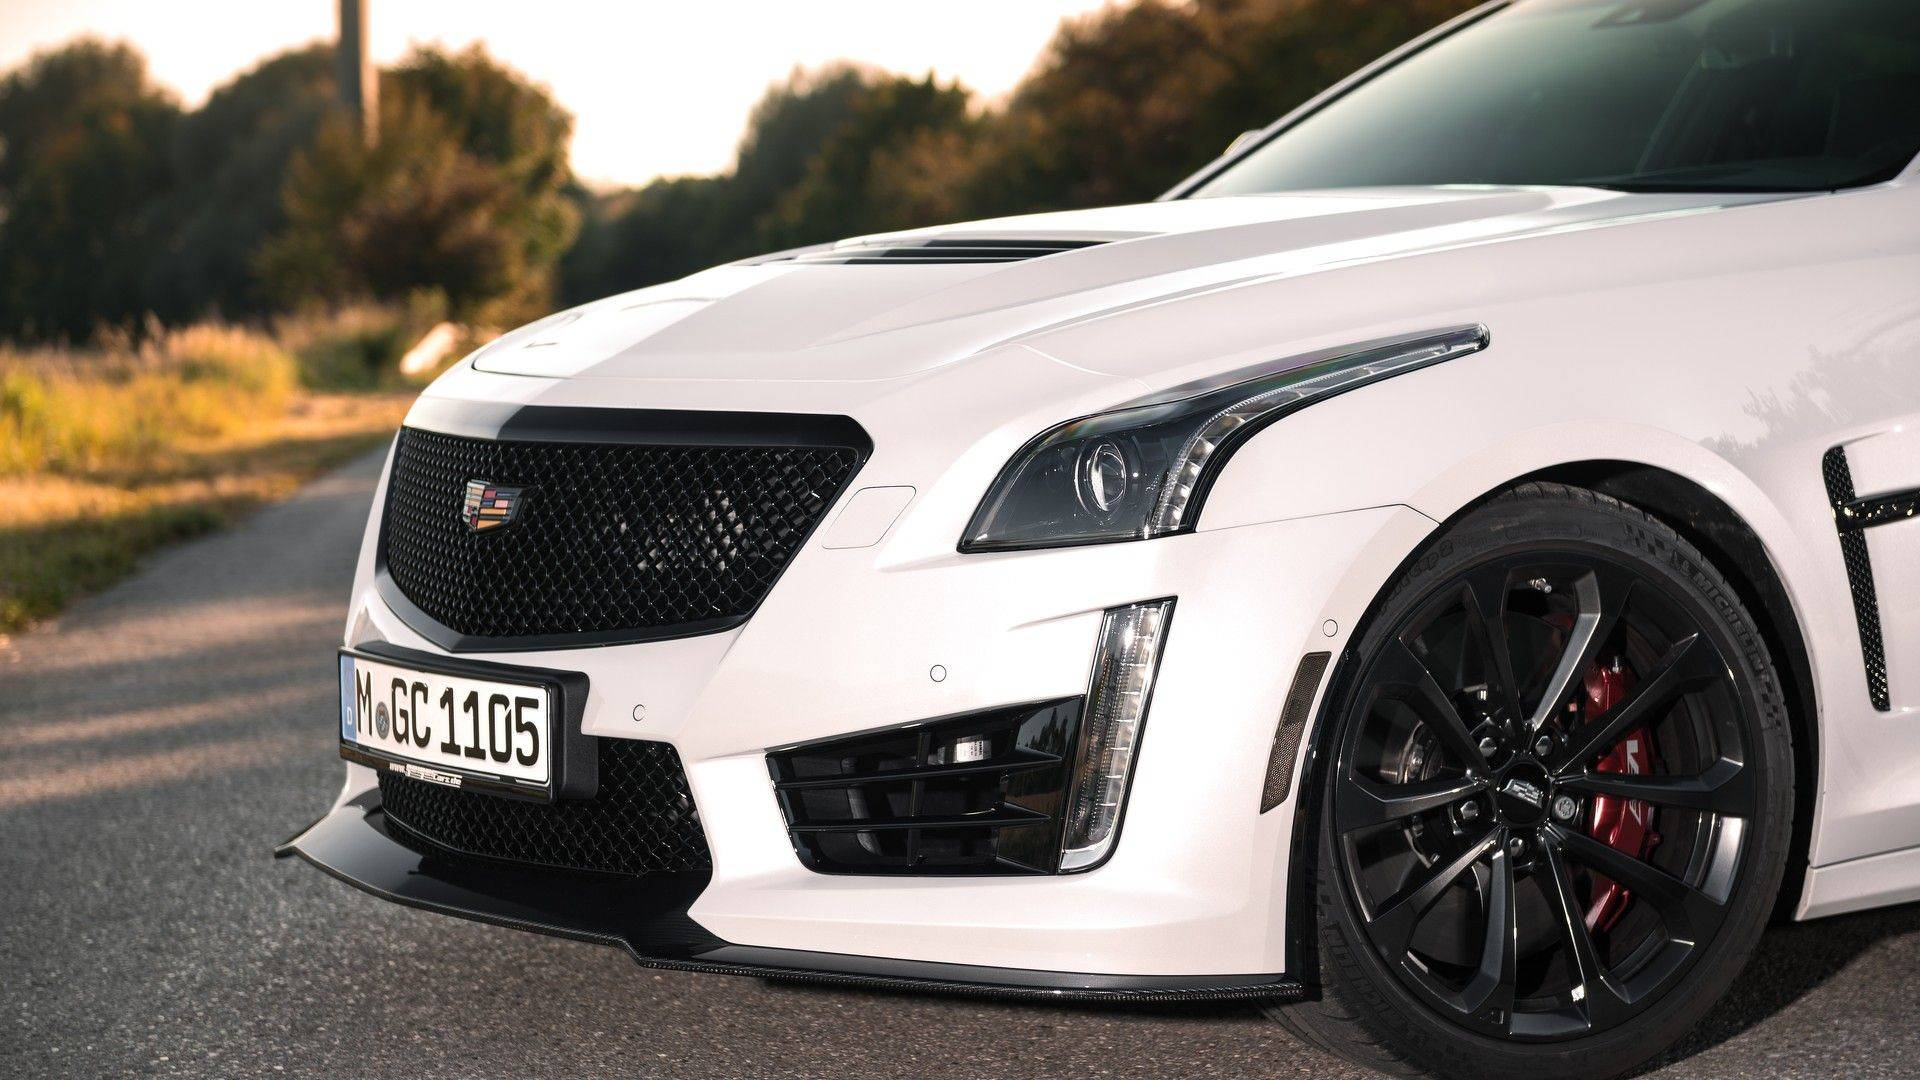 cadillac-cts-v-by-geigercars (6)